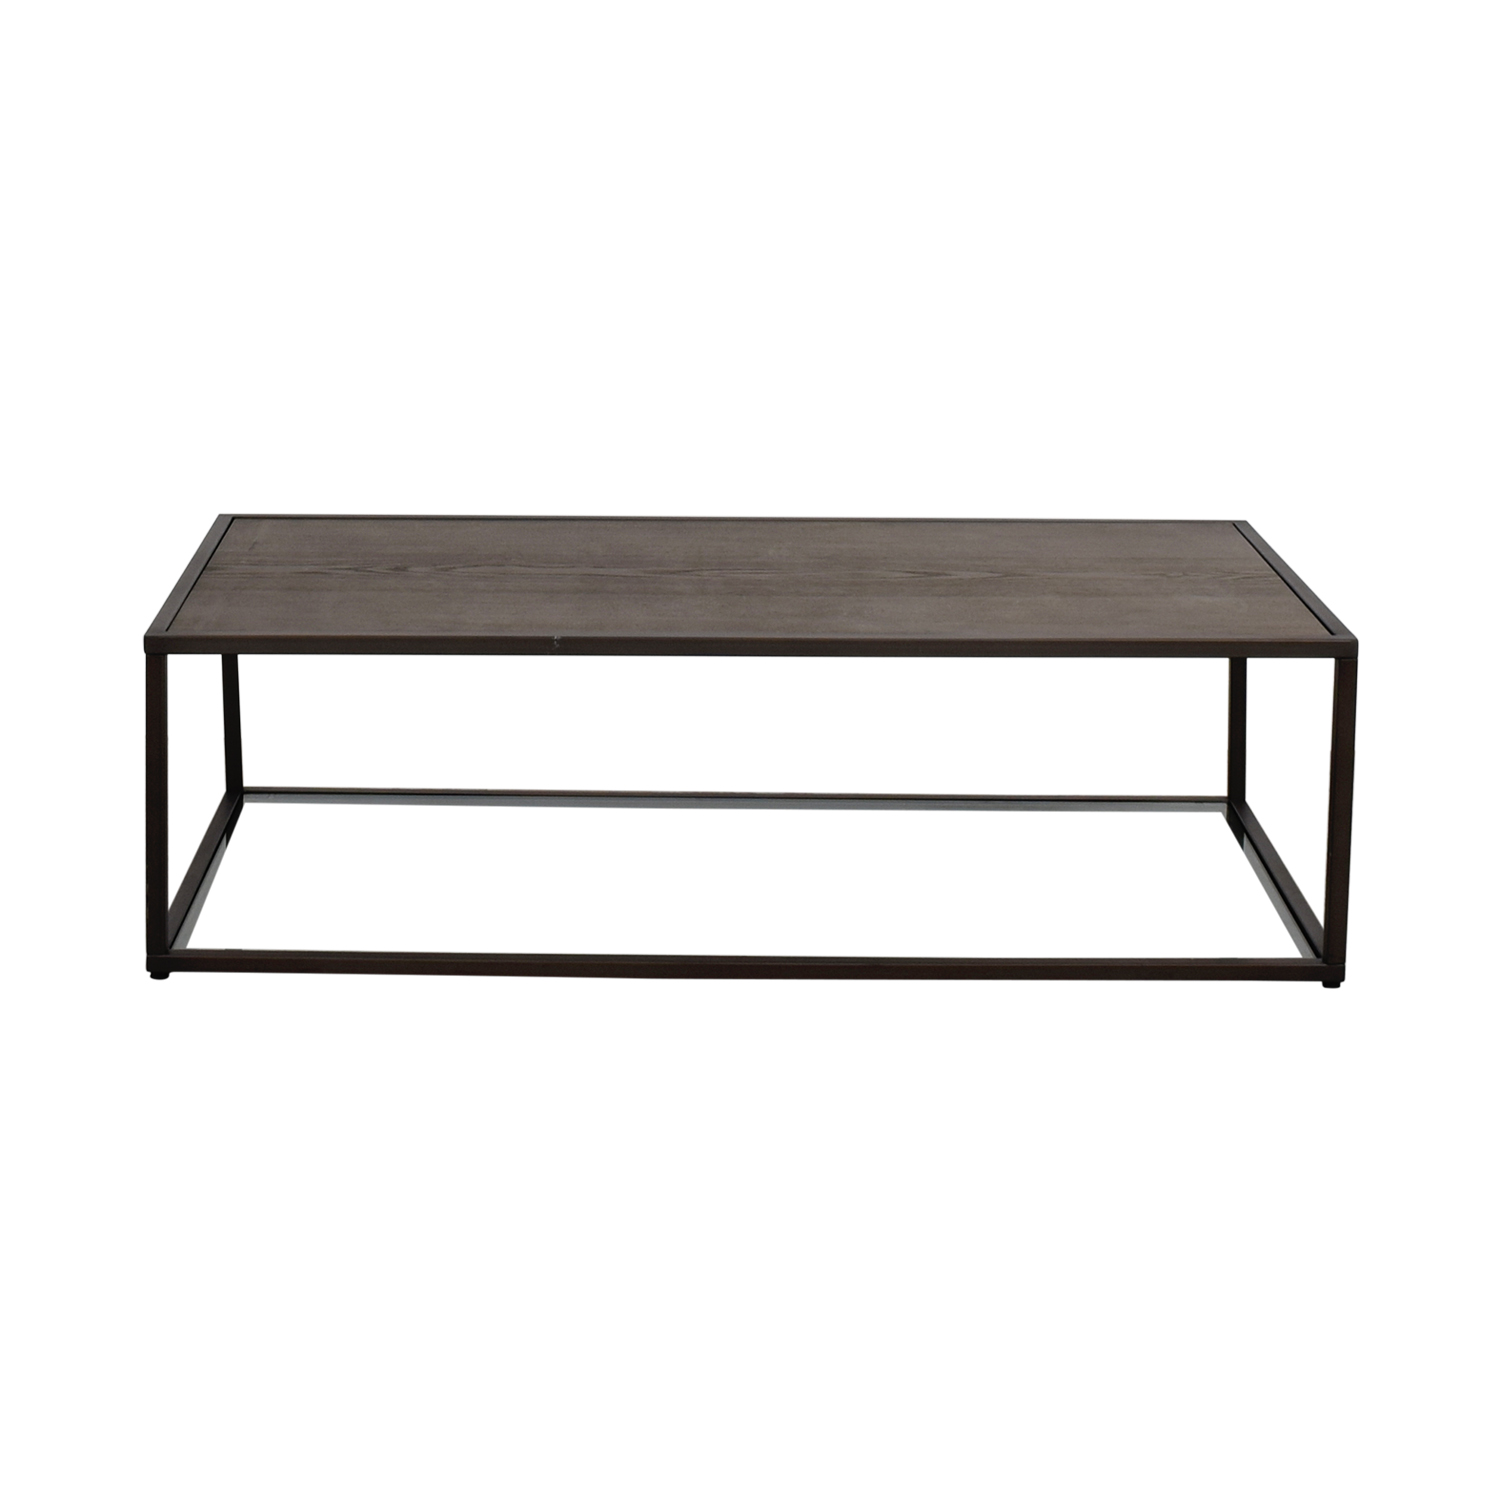 Crate & Barrel Switch Coffee Table sale